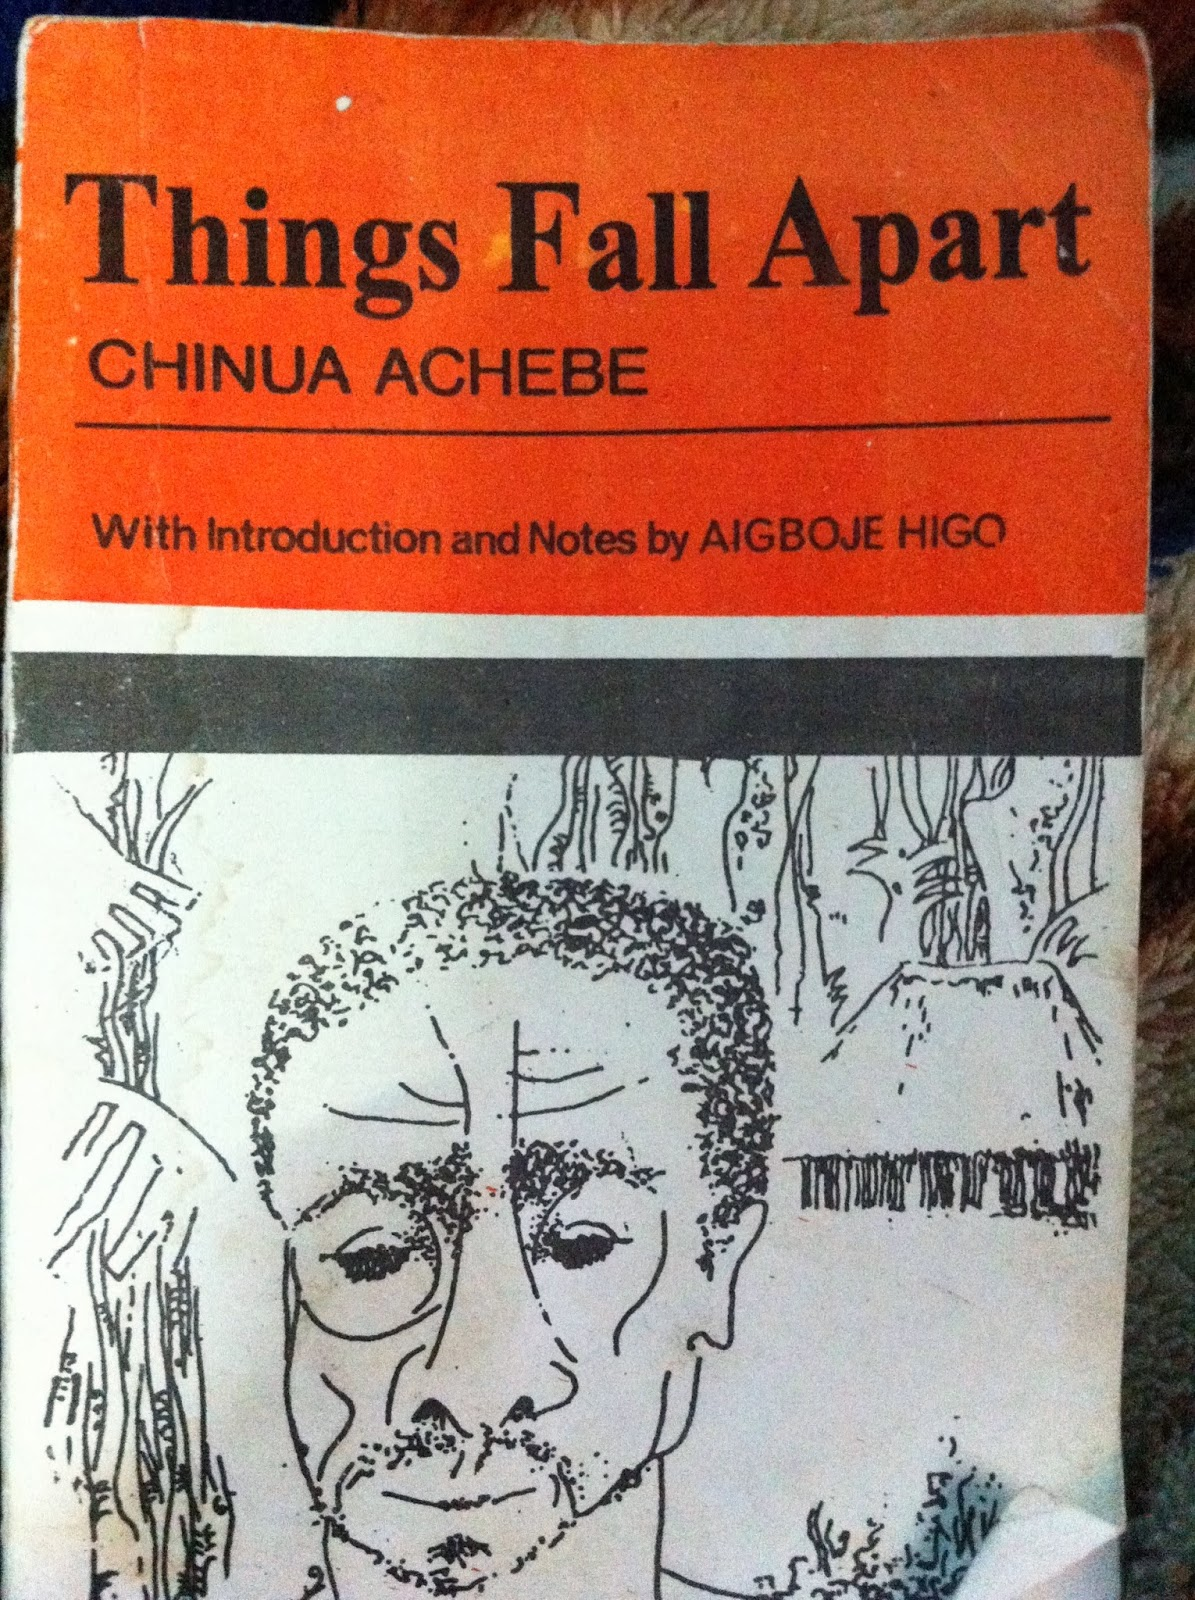 Western Influences on Chinua Achebe: The Second Coming and Things Fall Apart (Day 1 of 2)